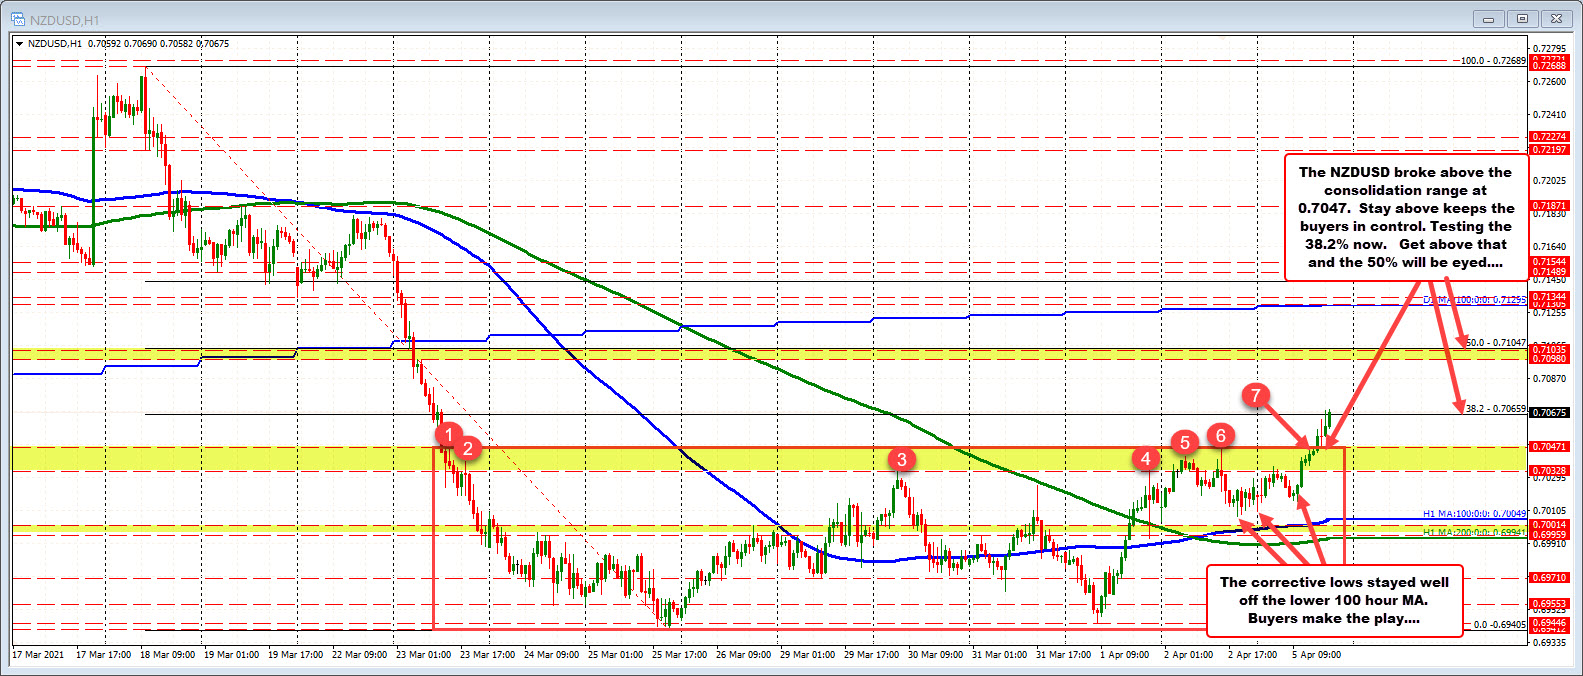 Swing high area at 0.70328 to 0.70471